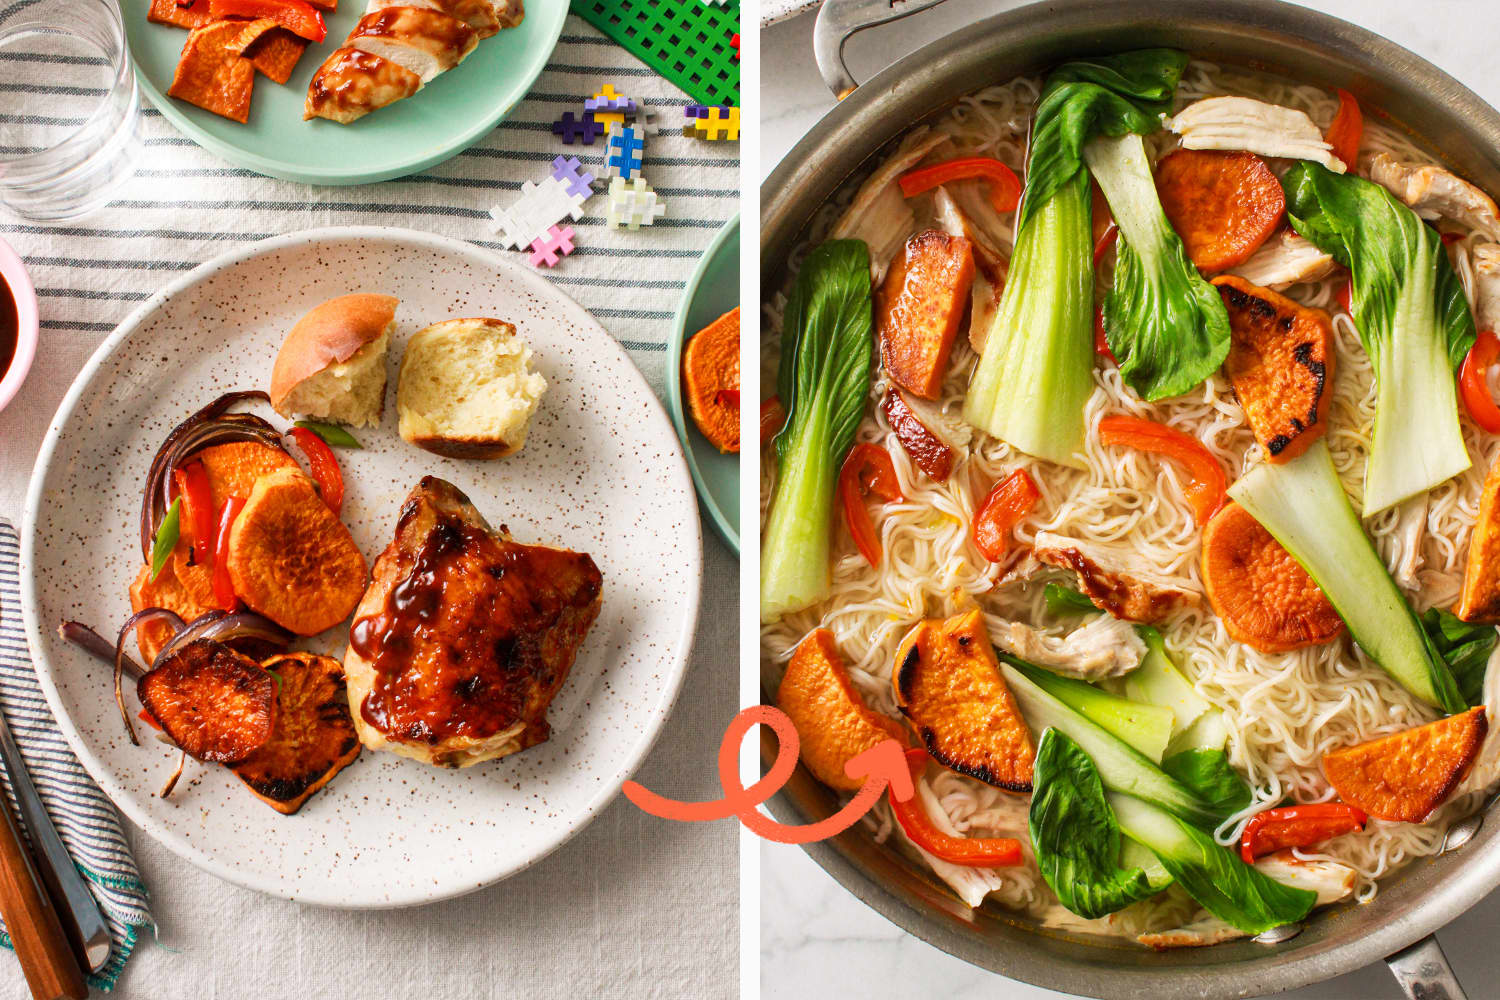 Cook Once, Eat Twice: Transform Saucy Sheet Pan Chicken Into 20-Minute Noodle Bowls